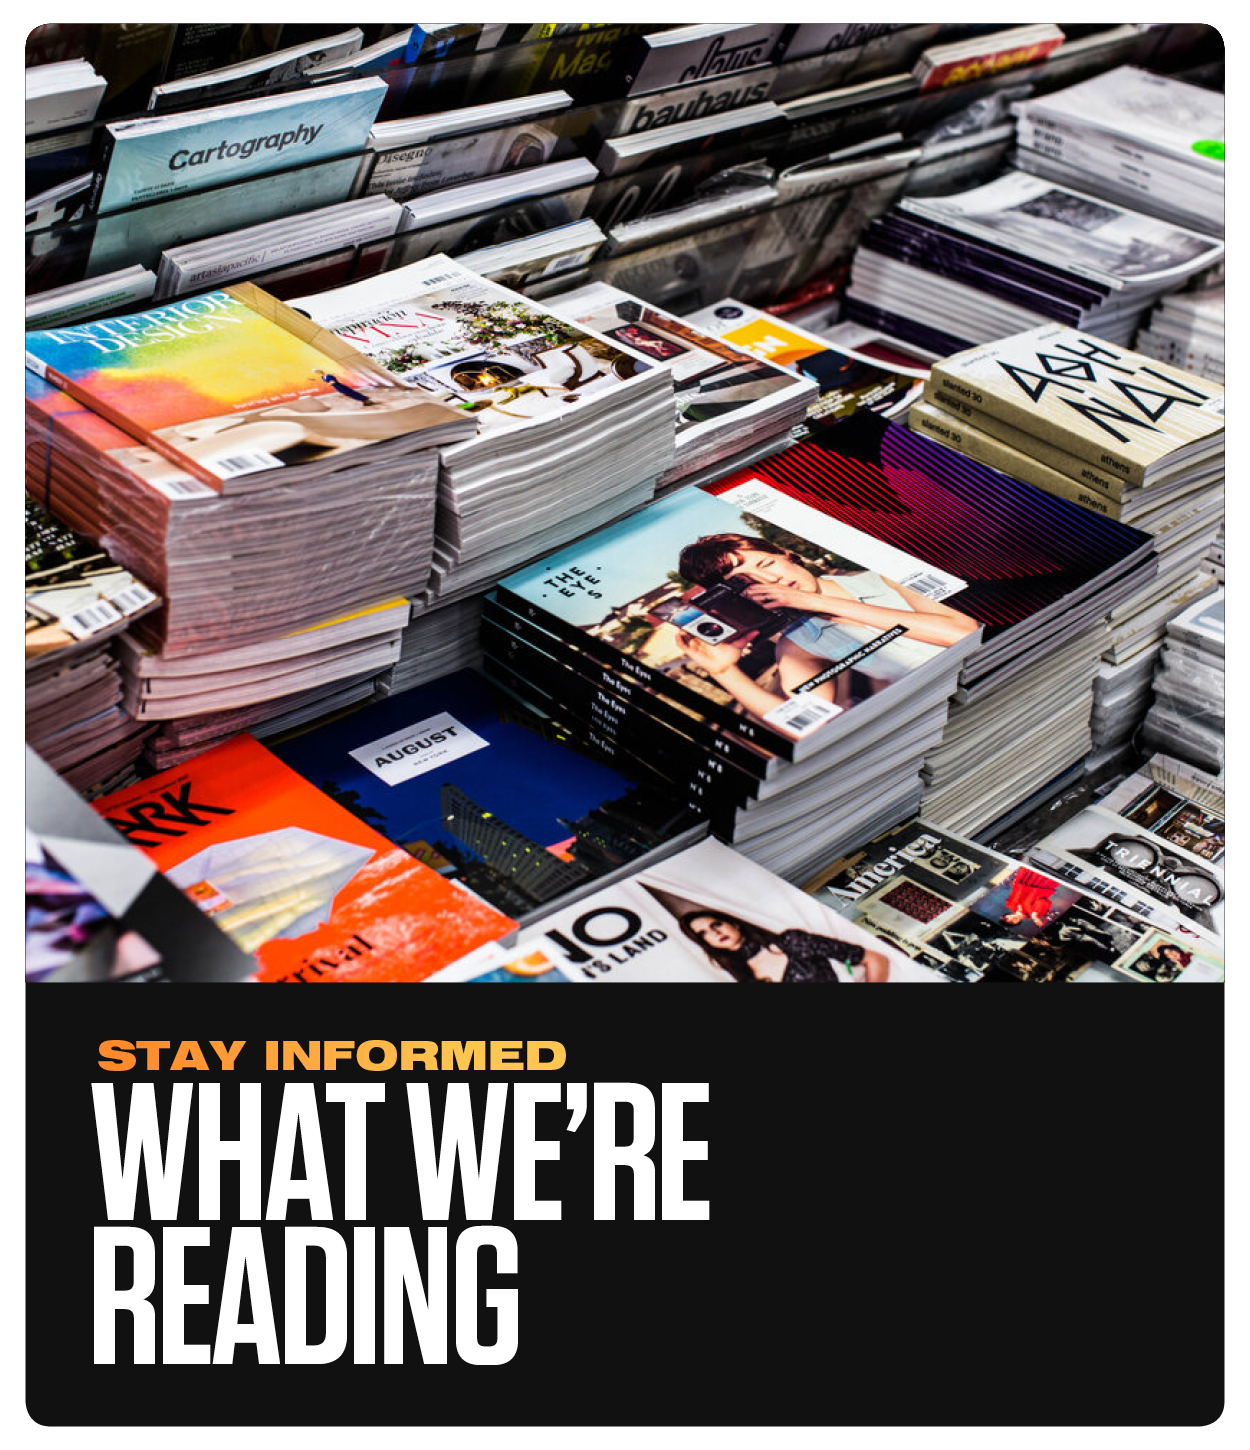 What we're reading tile.png